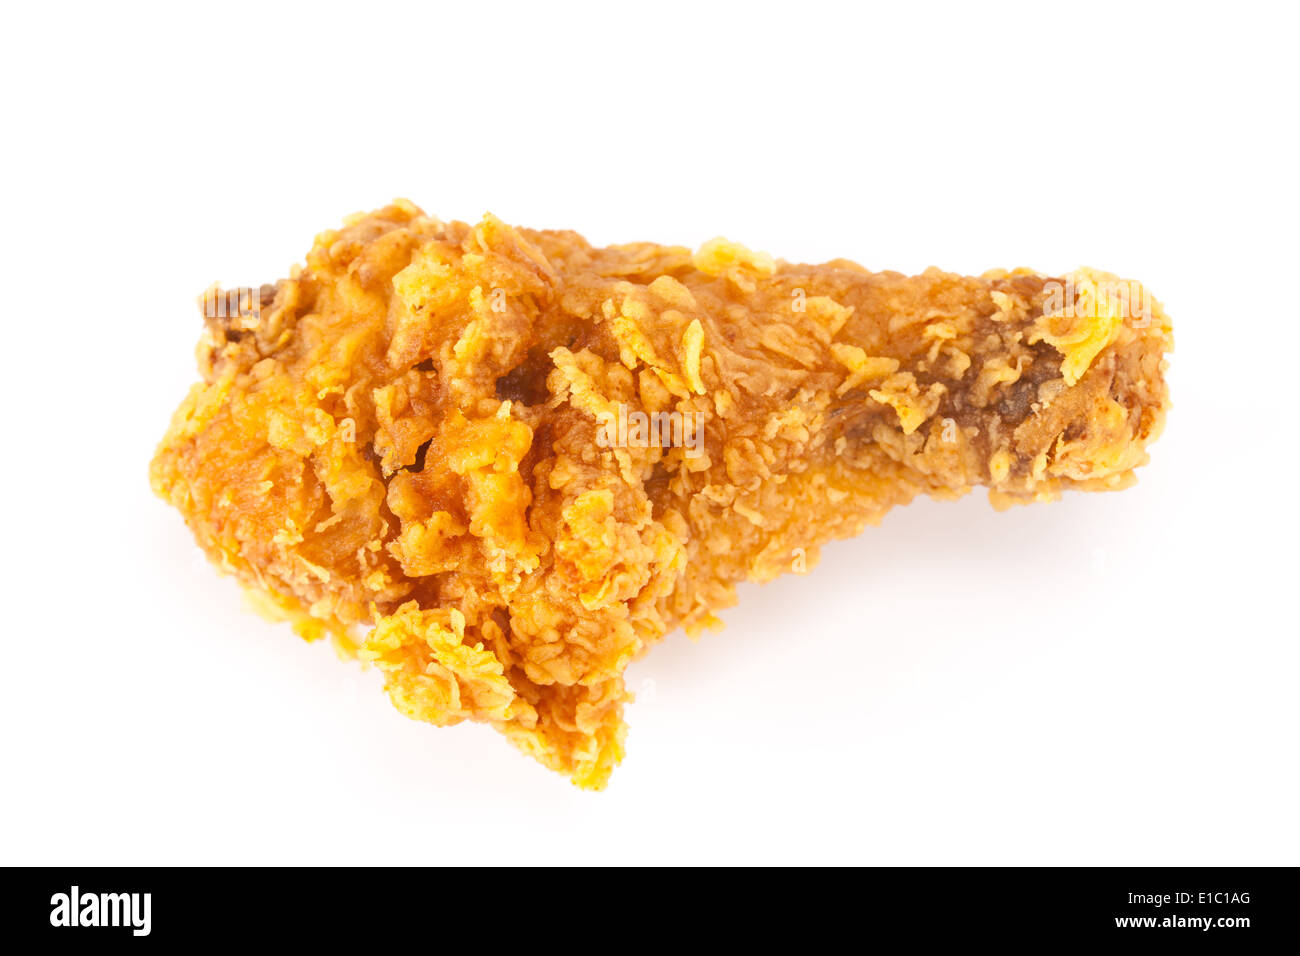 Fried chicken on dish on white background - Stock Image